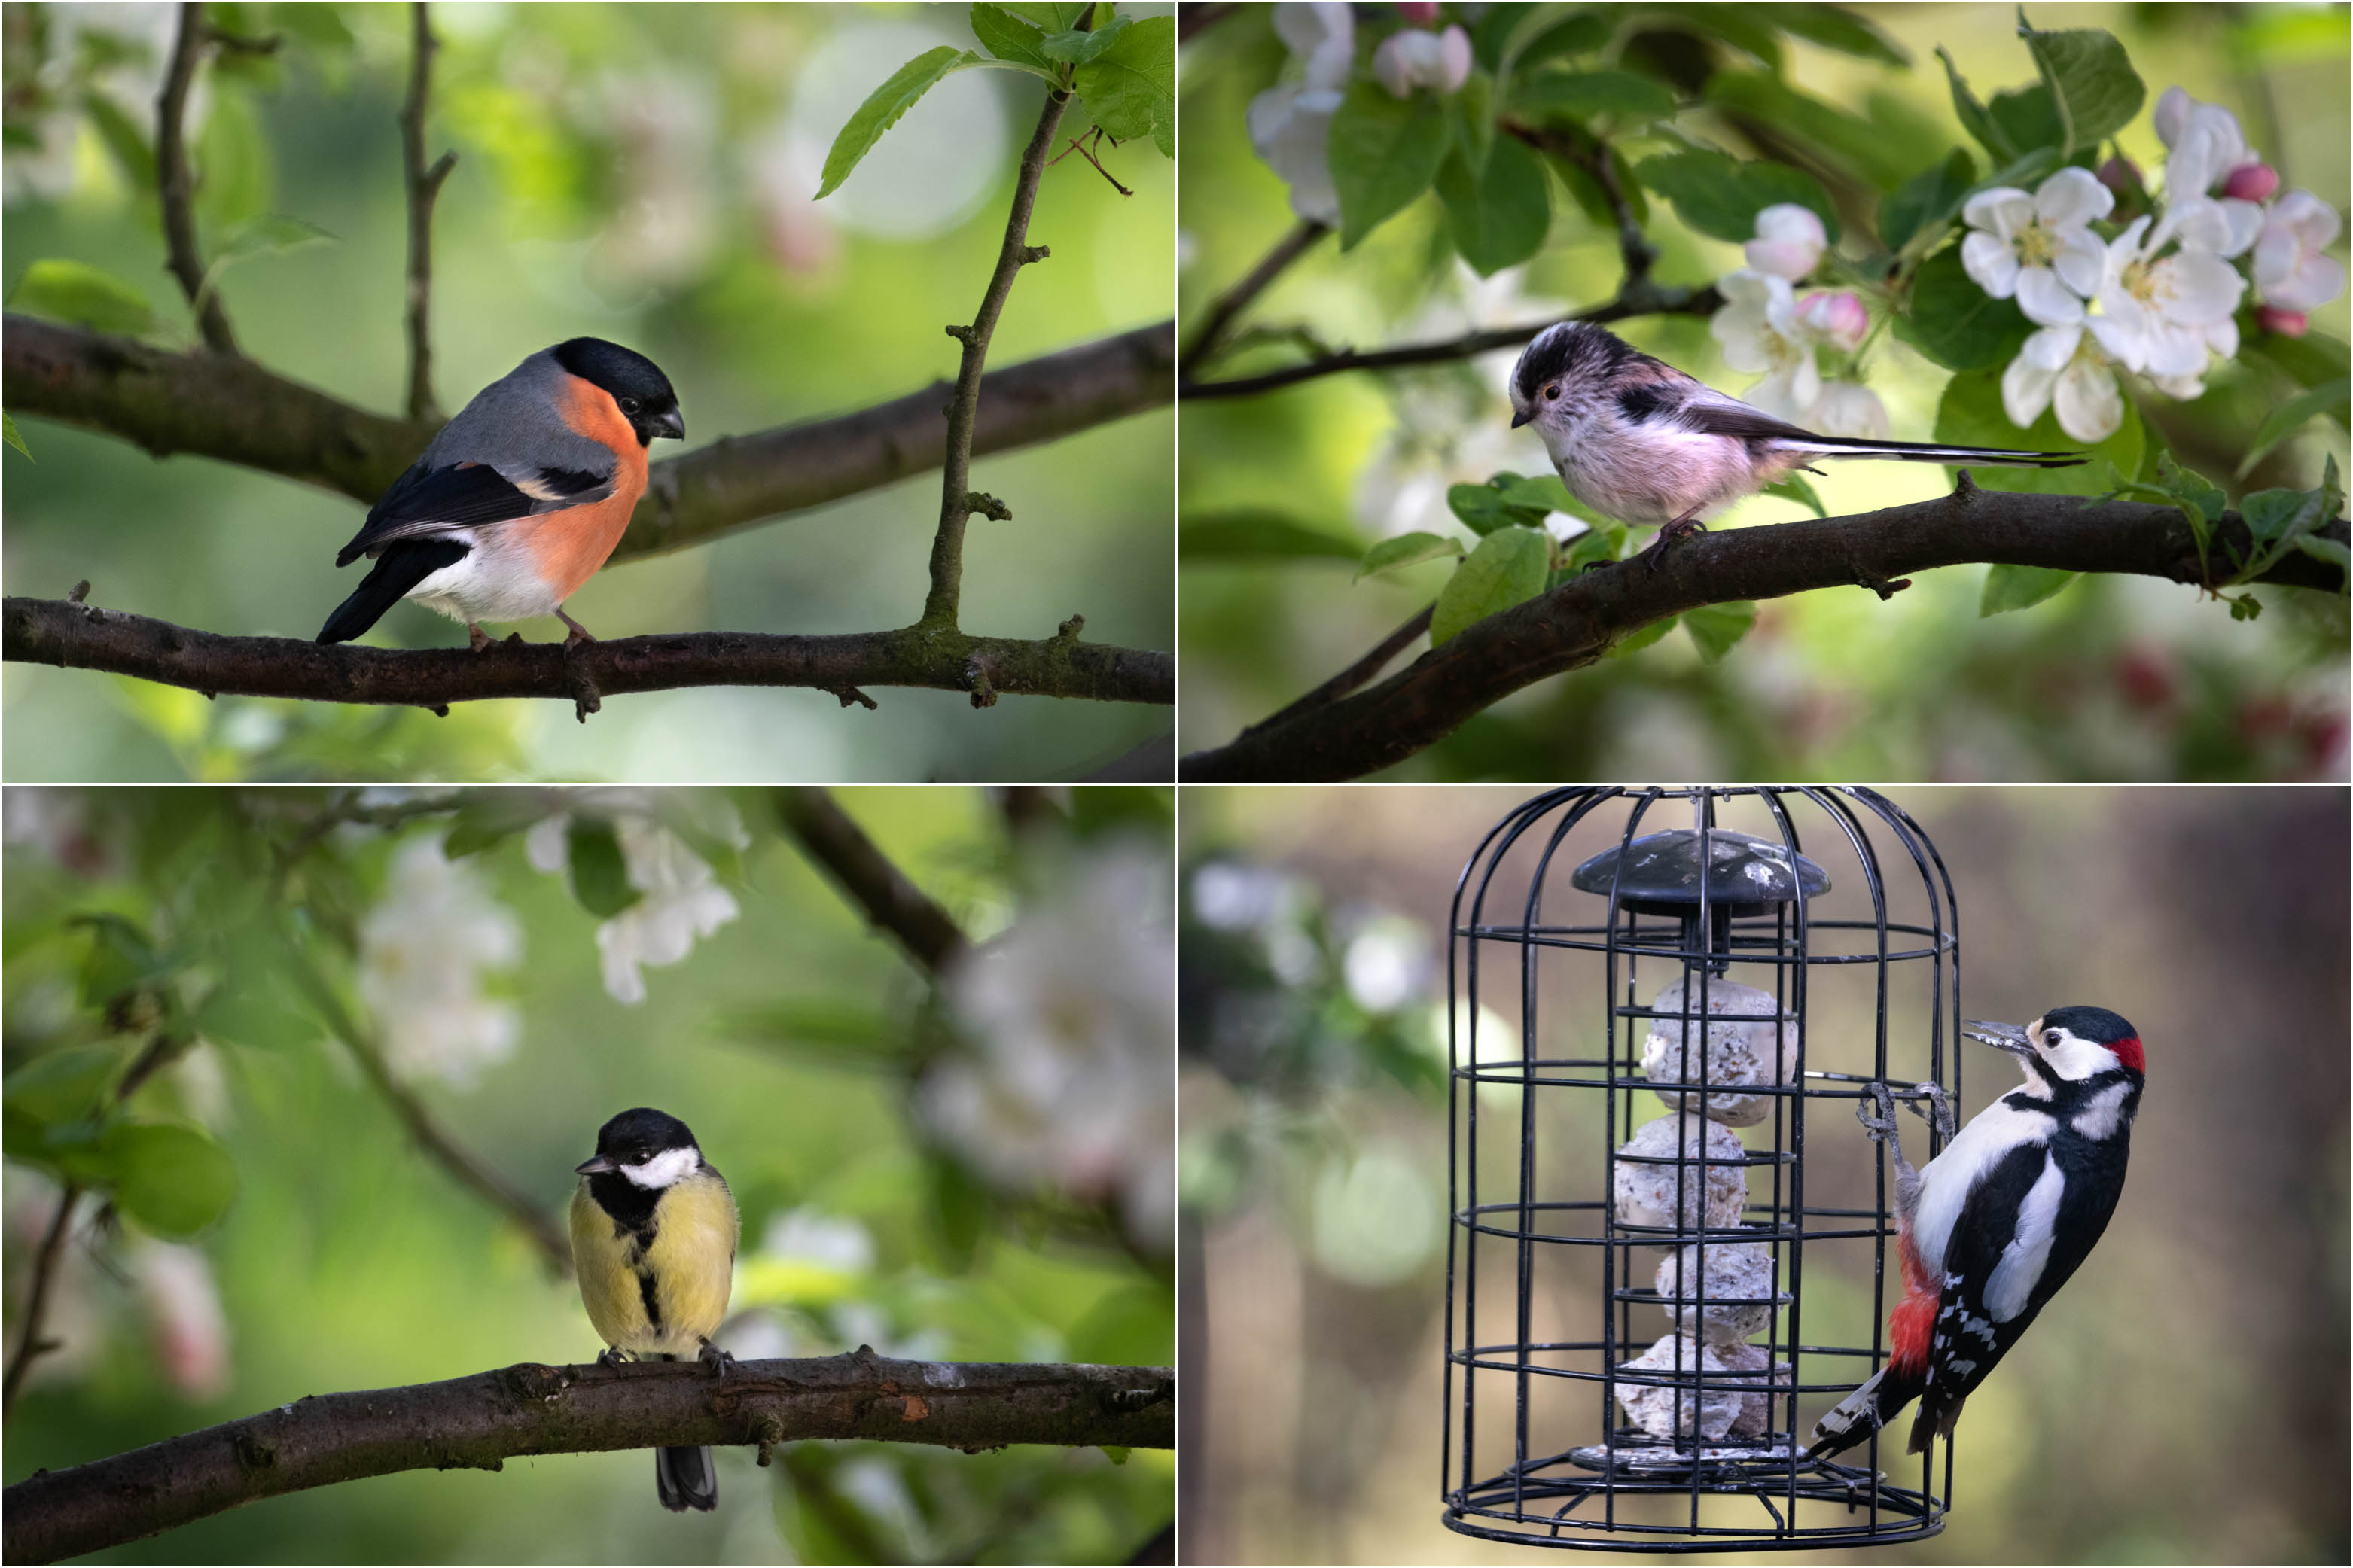 Bullfinch, long tailed tit, great tit, great spotted woodpecker